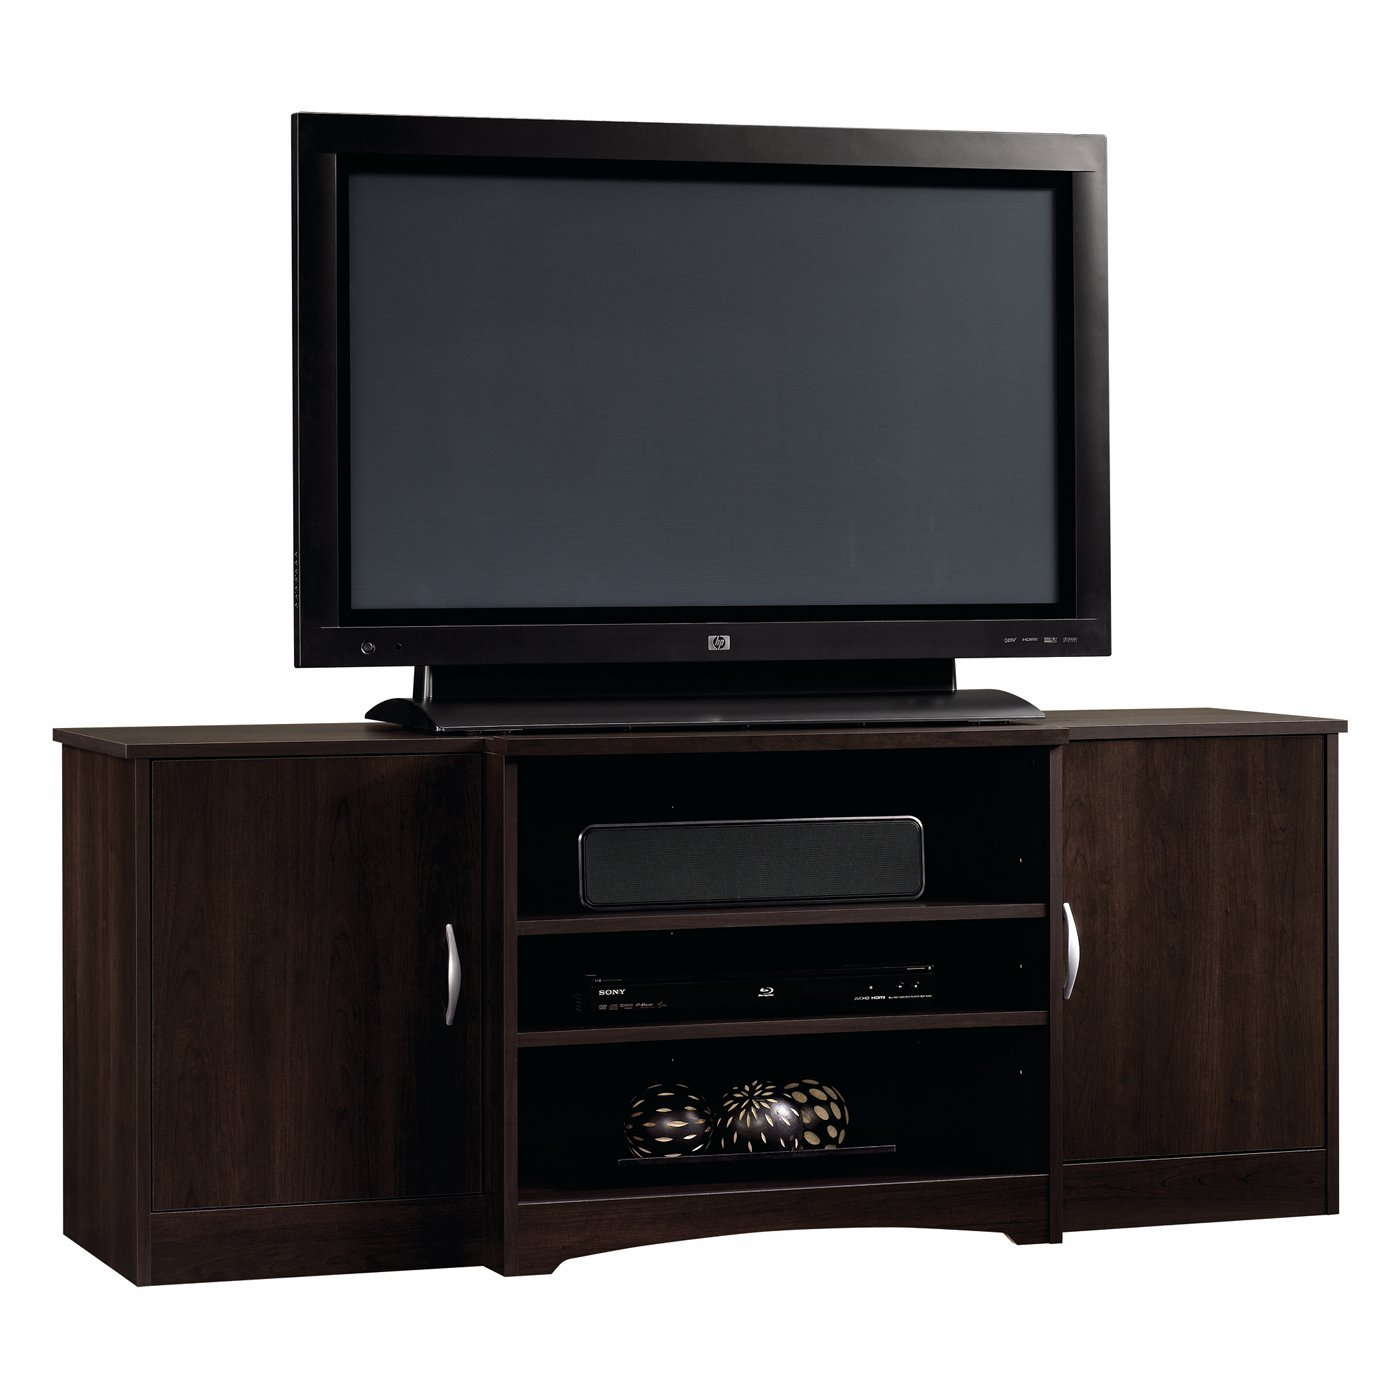 """Sauder Office Furniture Beginnings Cinnamon Cherry Entertainment Credenza for TVs up to 42"""""""